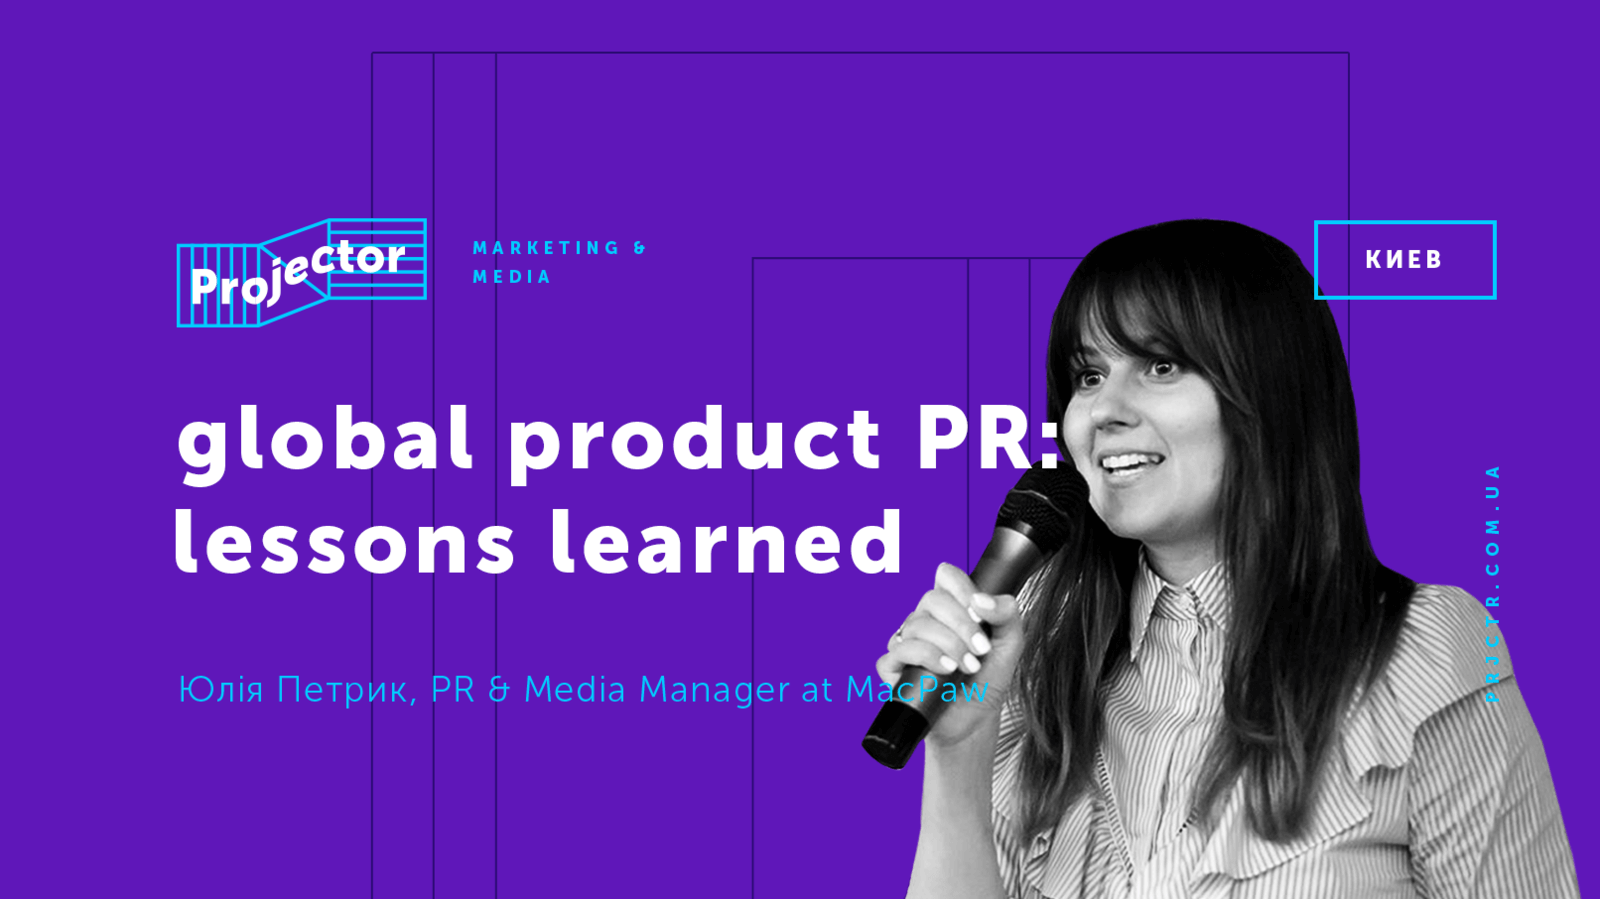 Global product PR: lessons learned